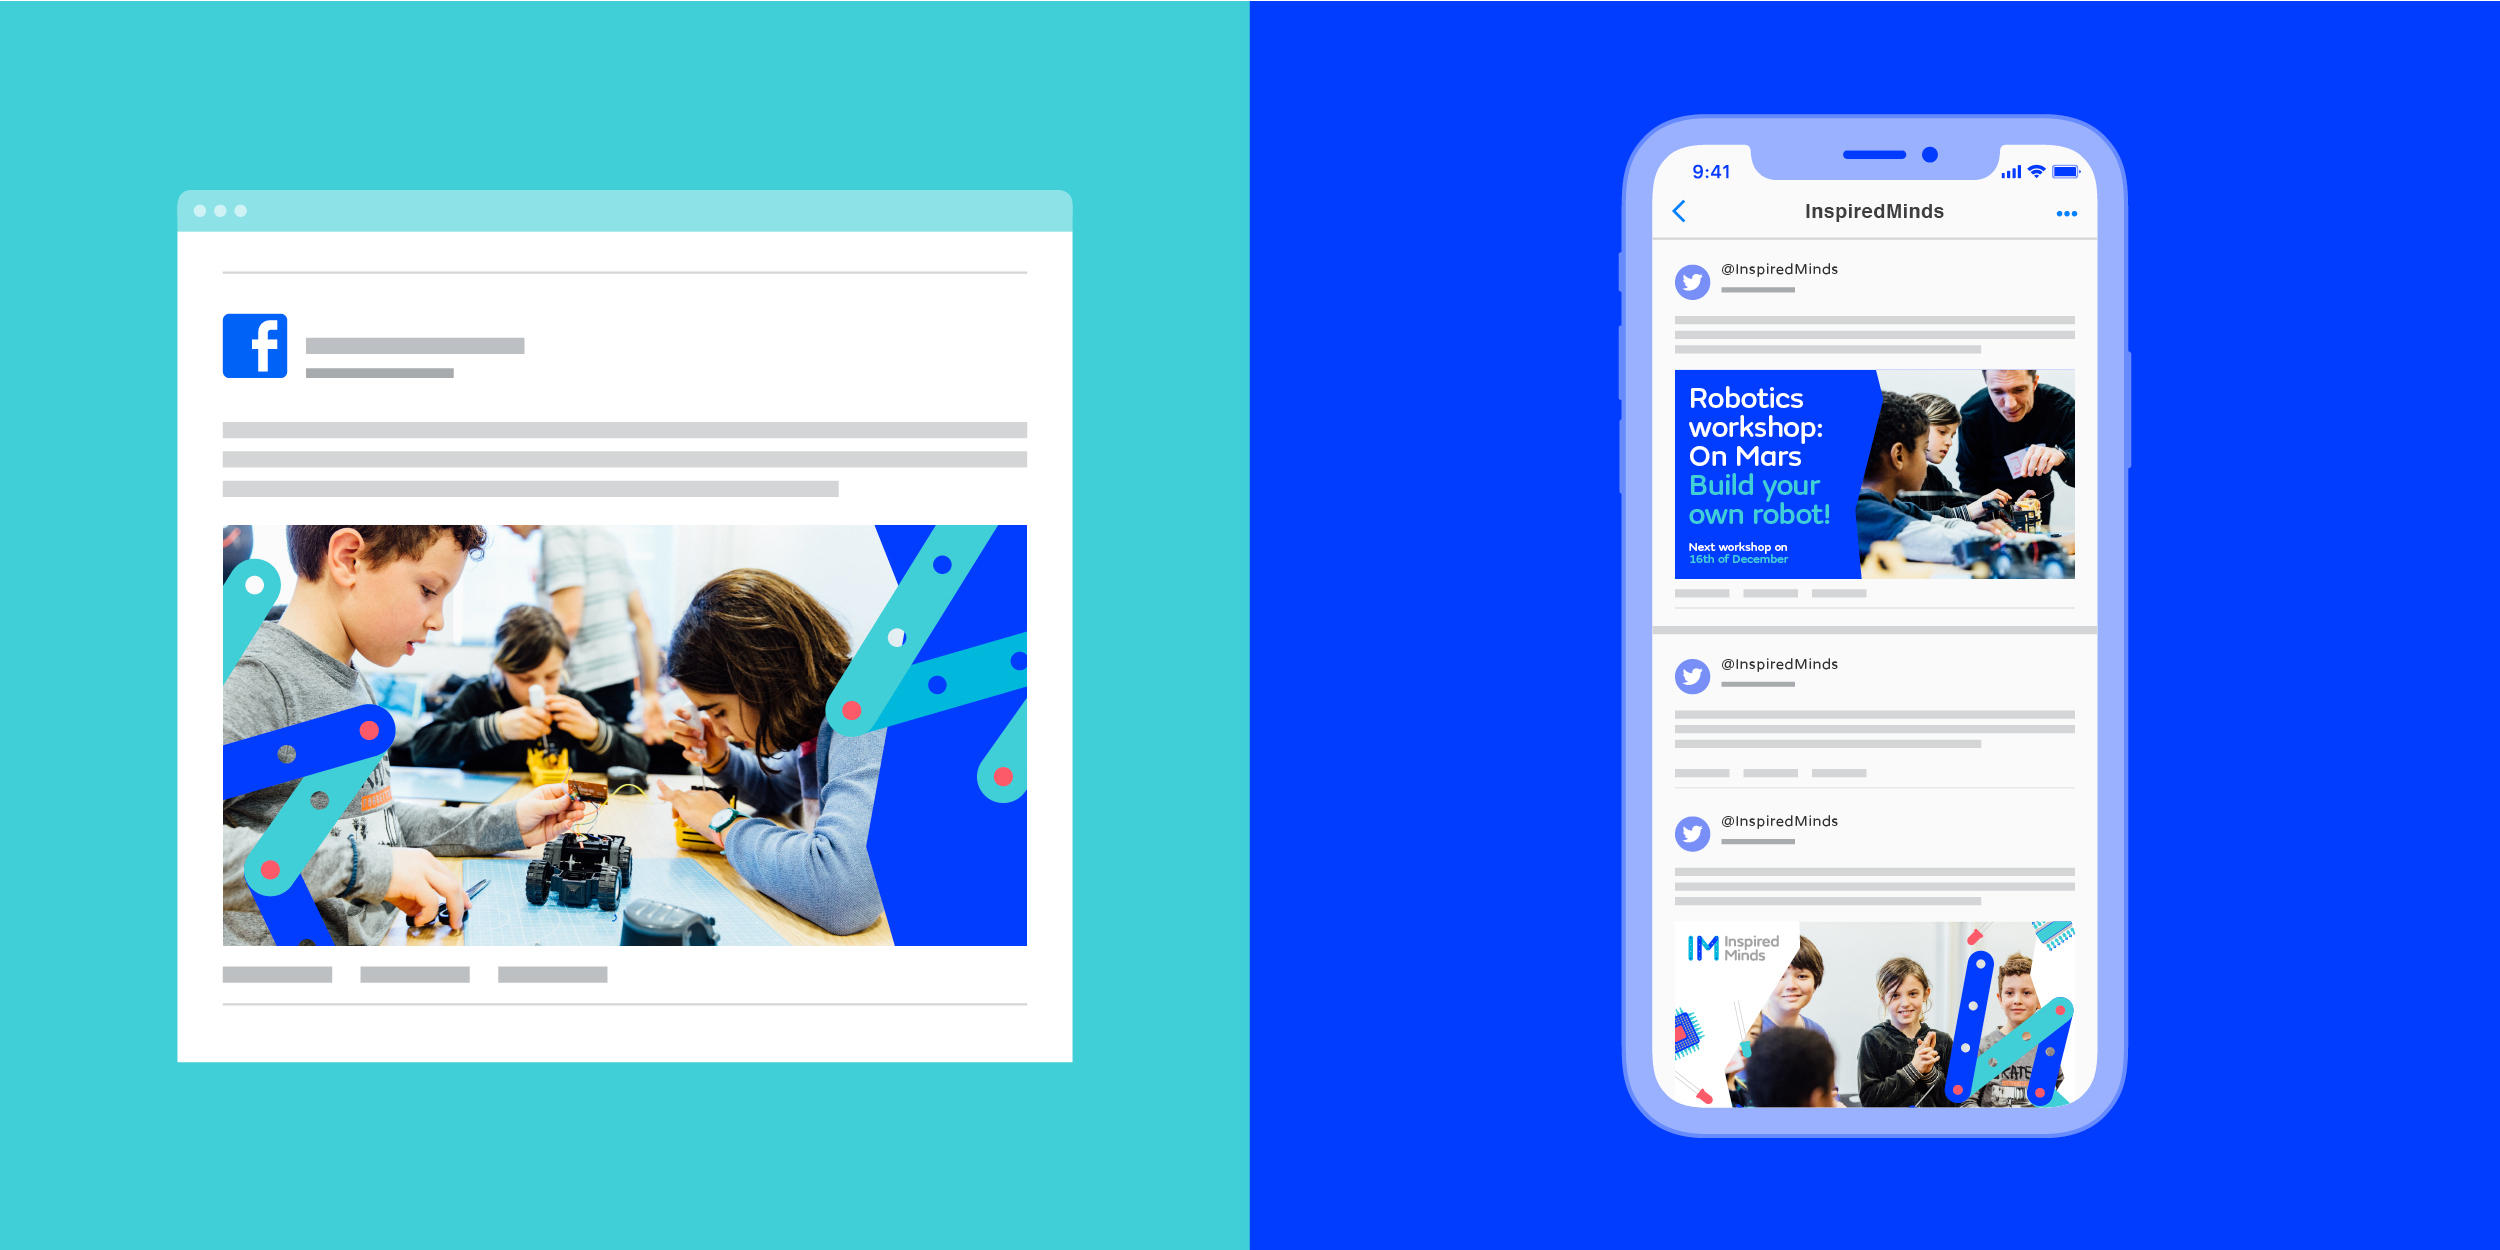 Inspired+Minds_Project_Company_identity_design_Alan_Clarke-Symonds_graphic_design_project_facebook-Twitter-Instagram_adverts04.jpg